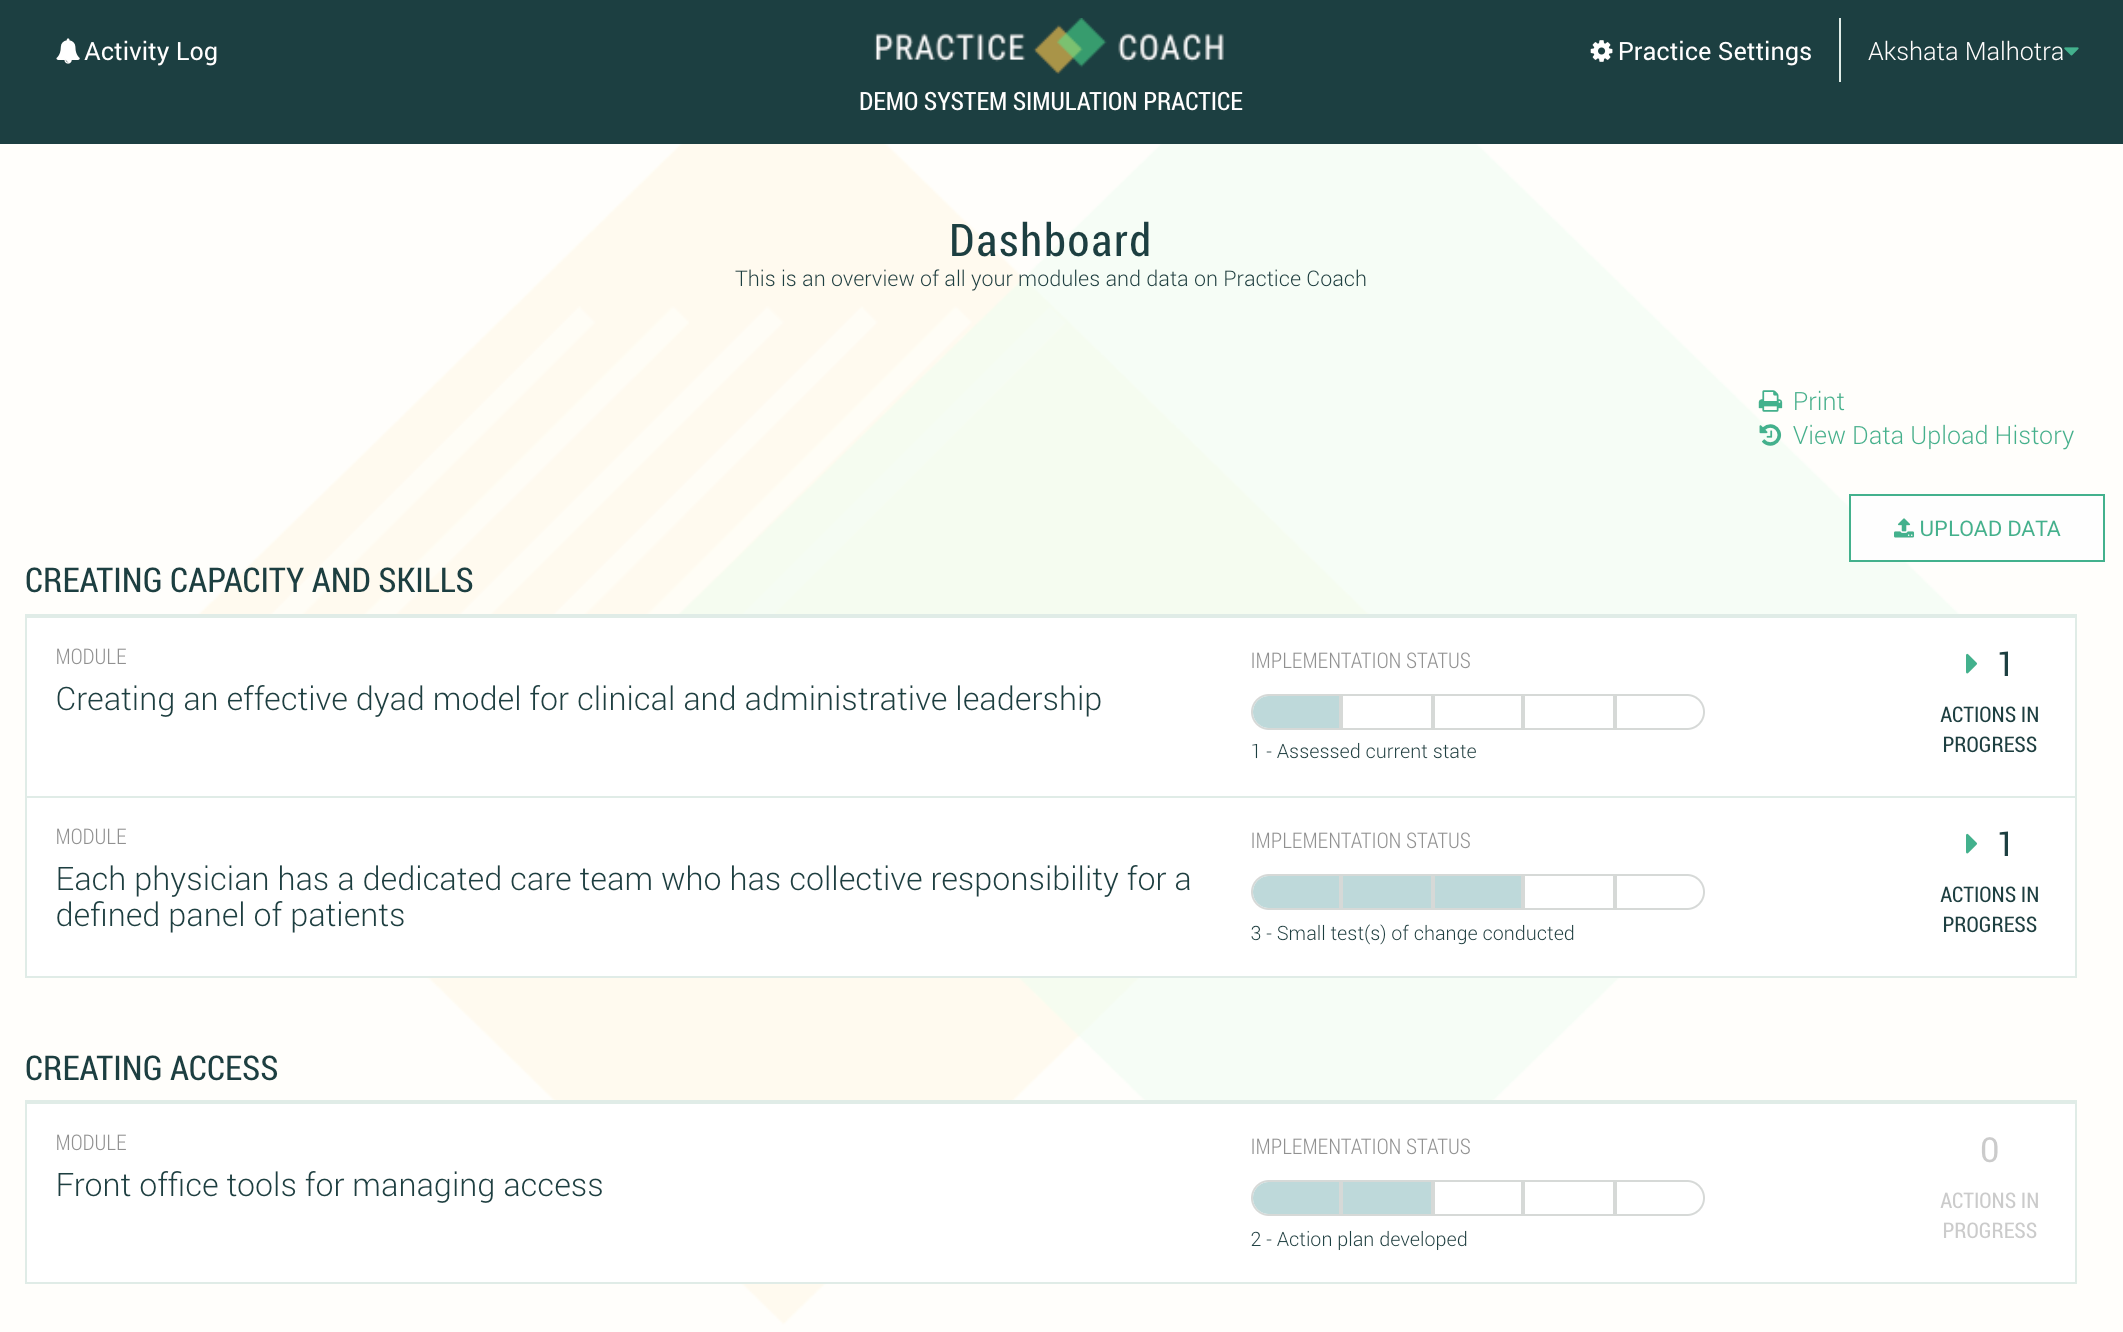 Evidence Based Content Distribution   The Peterson Center on Healthcare evidence-based content is distributed via PracticeCoach, and modules are made available to practices based on their goals and priorities